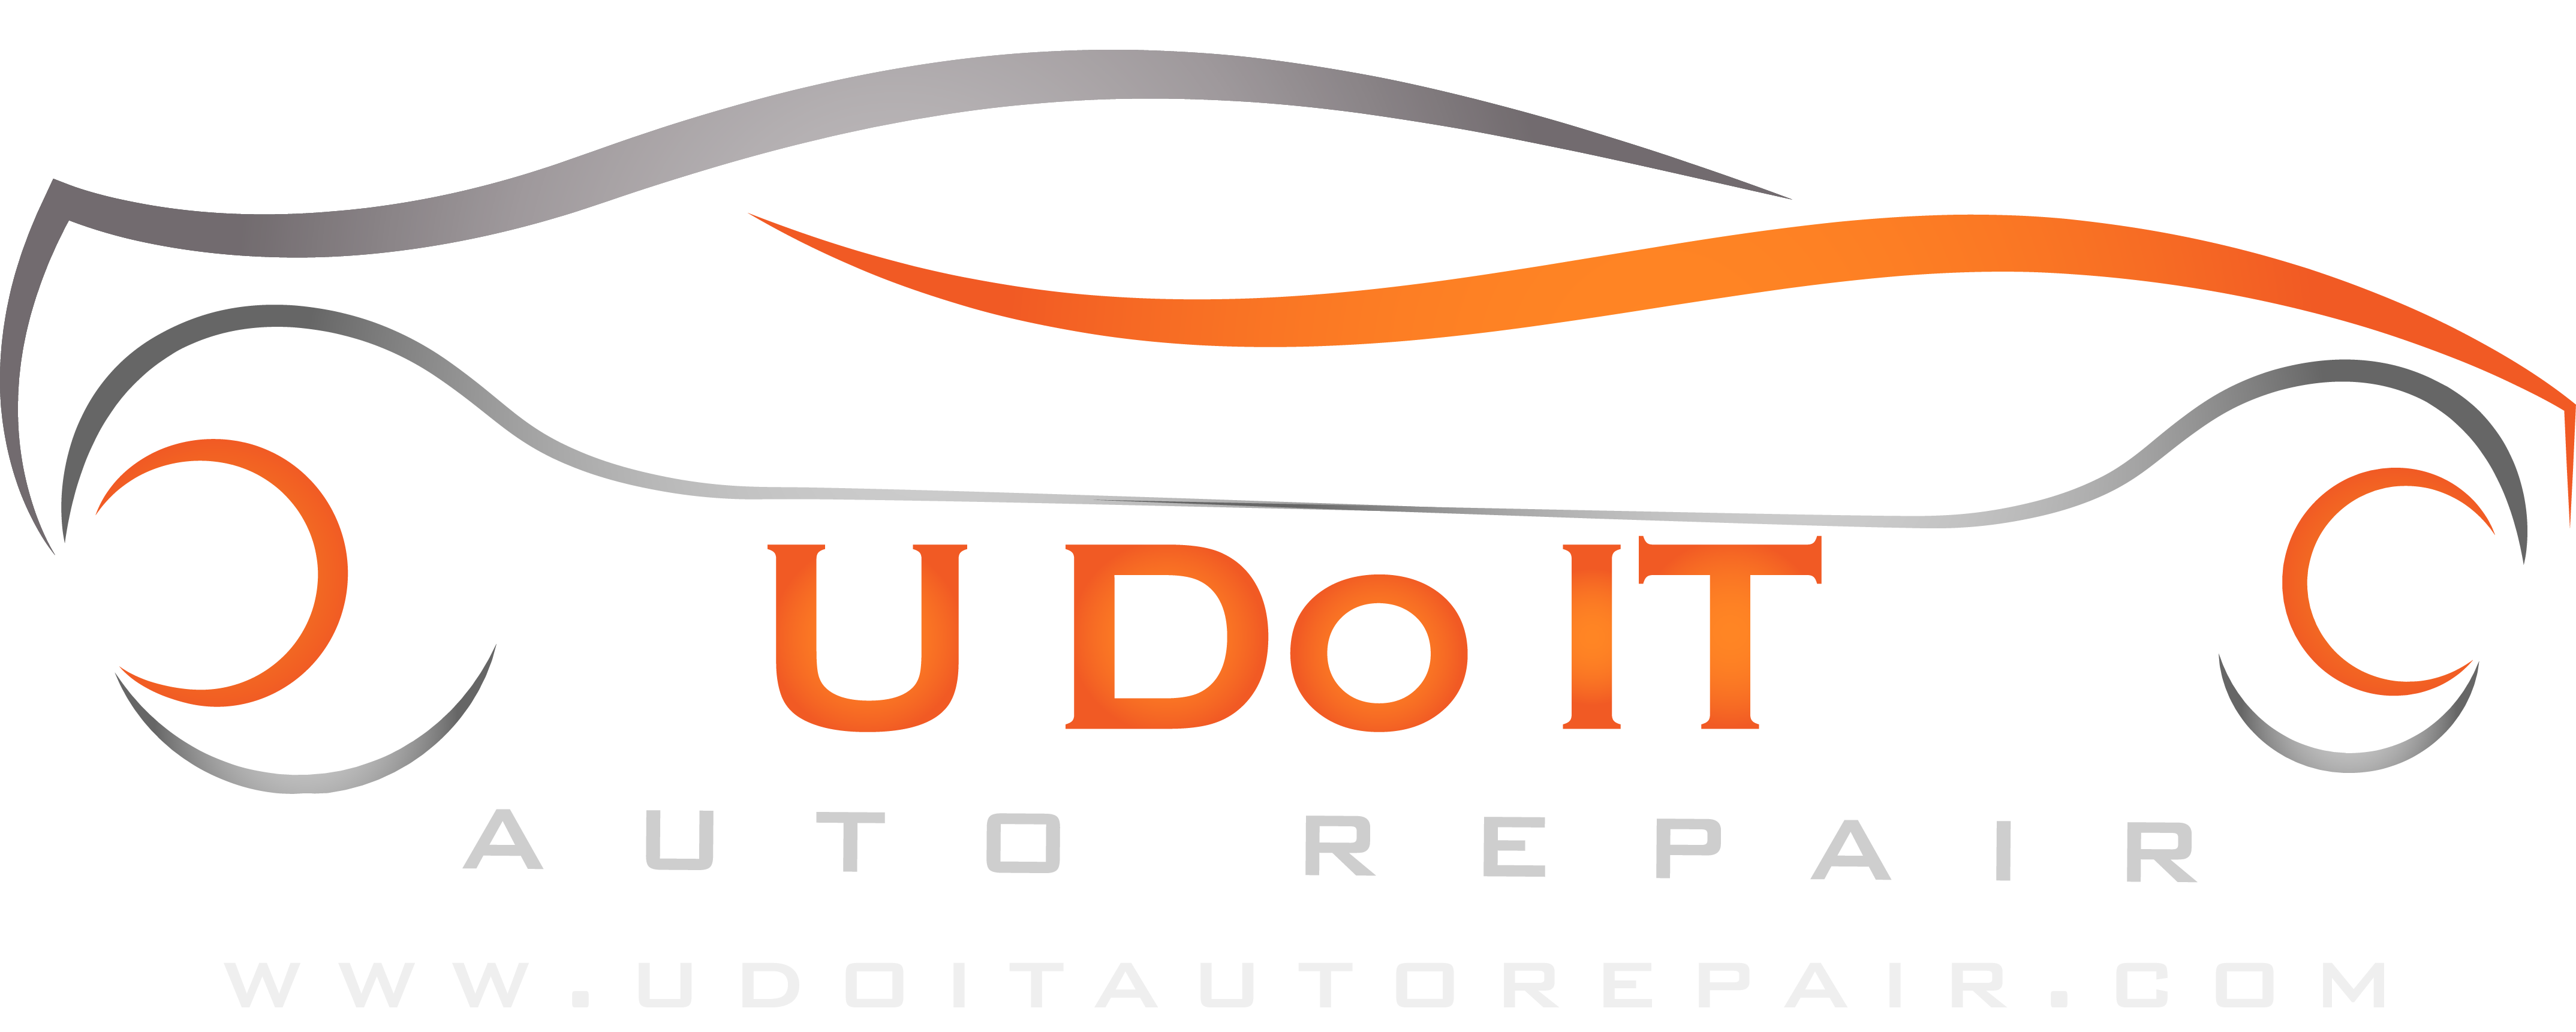 u do it auto repair houston tx 77037 2902 neustar localeze rh neustarlocaleze biz auto parts shop logo auto repair shop logo